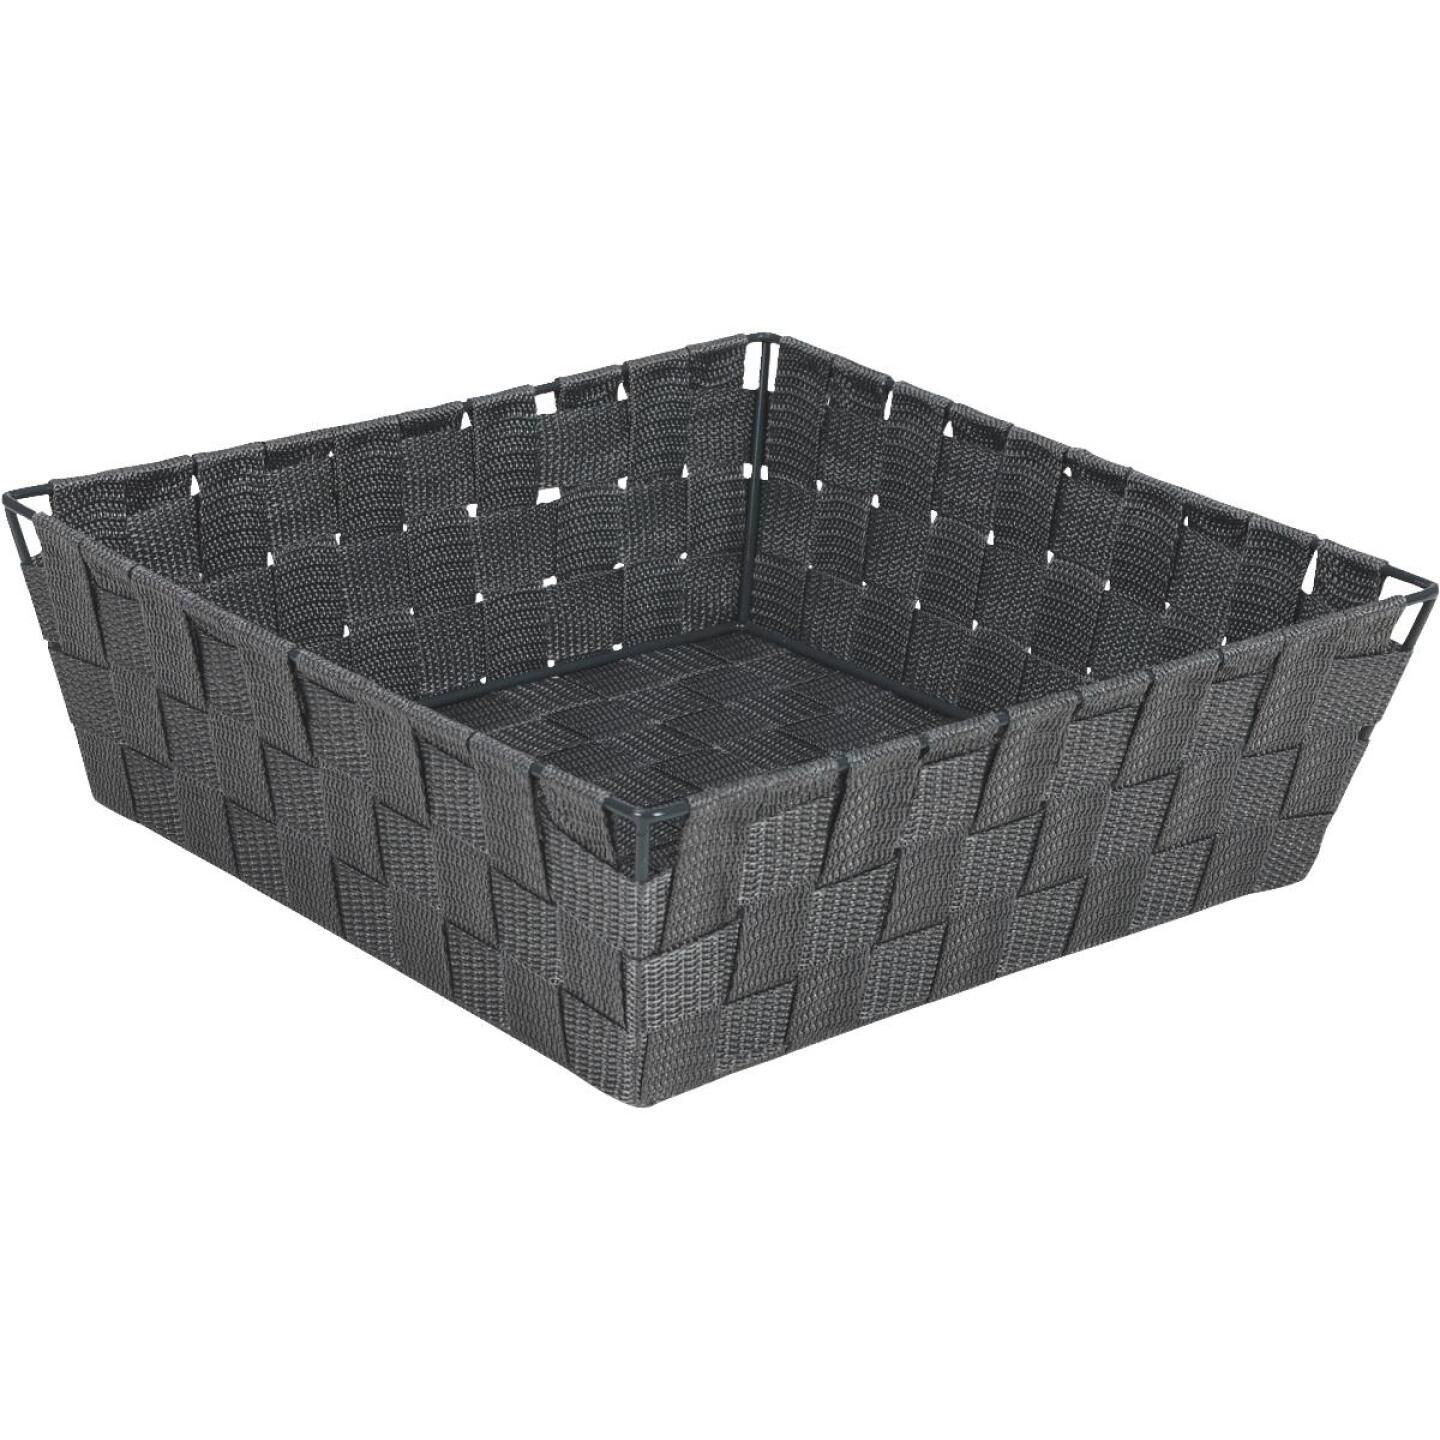 Home Impressions 11.75 In. x 3.75 In. H. Woven Storage Basket, Gray Image 1